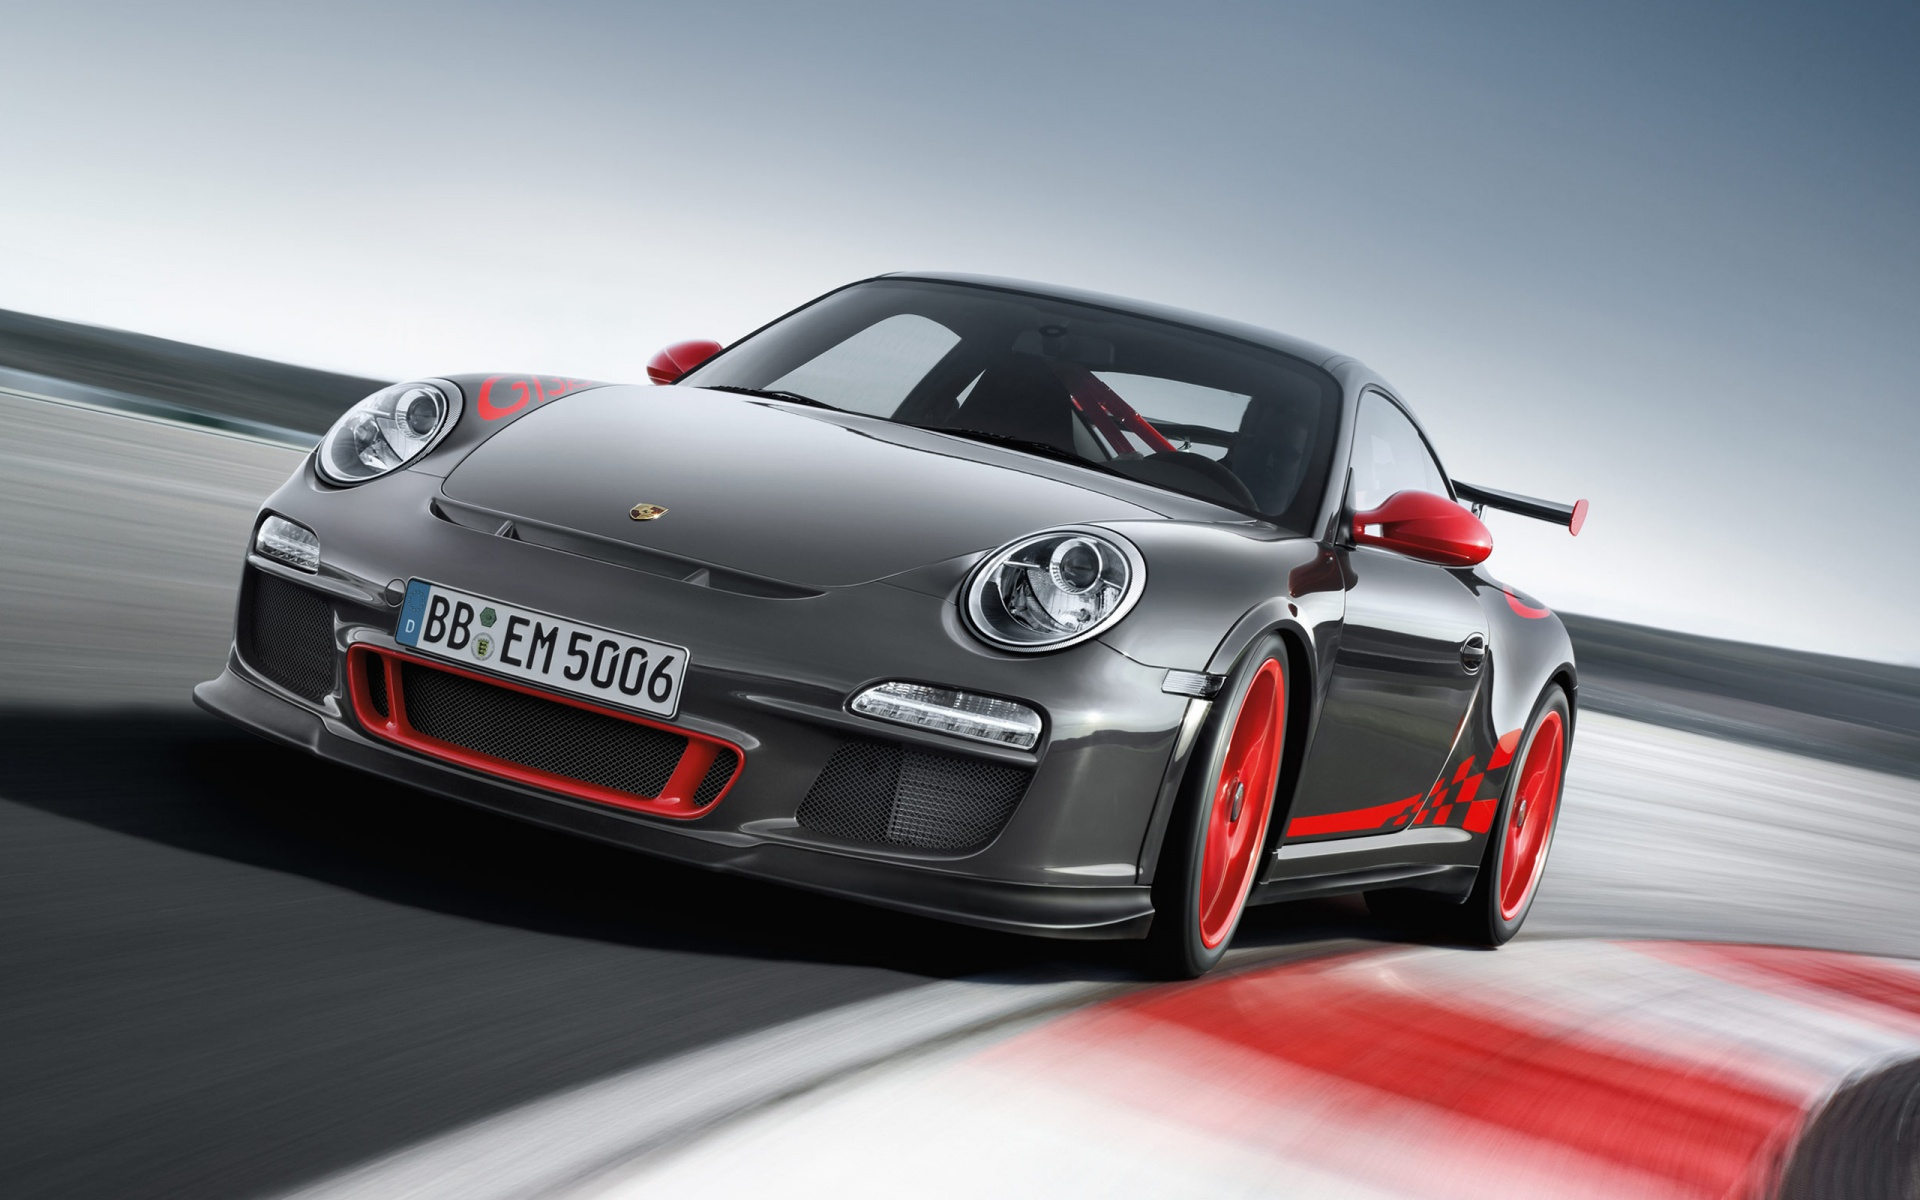 Porsche Race Car High Resolution Wallpaper 1   SA Wallpapers 1920x1200